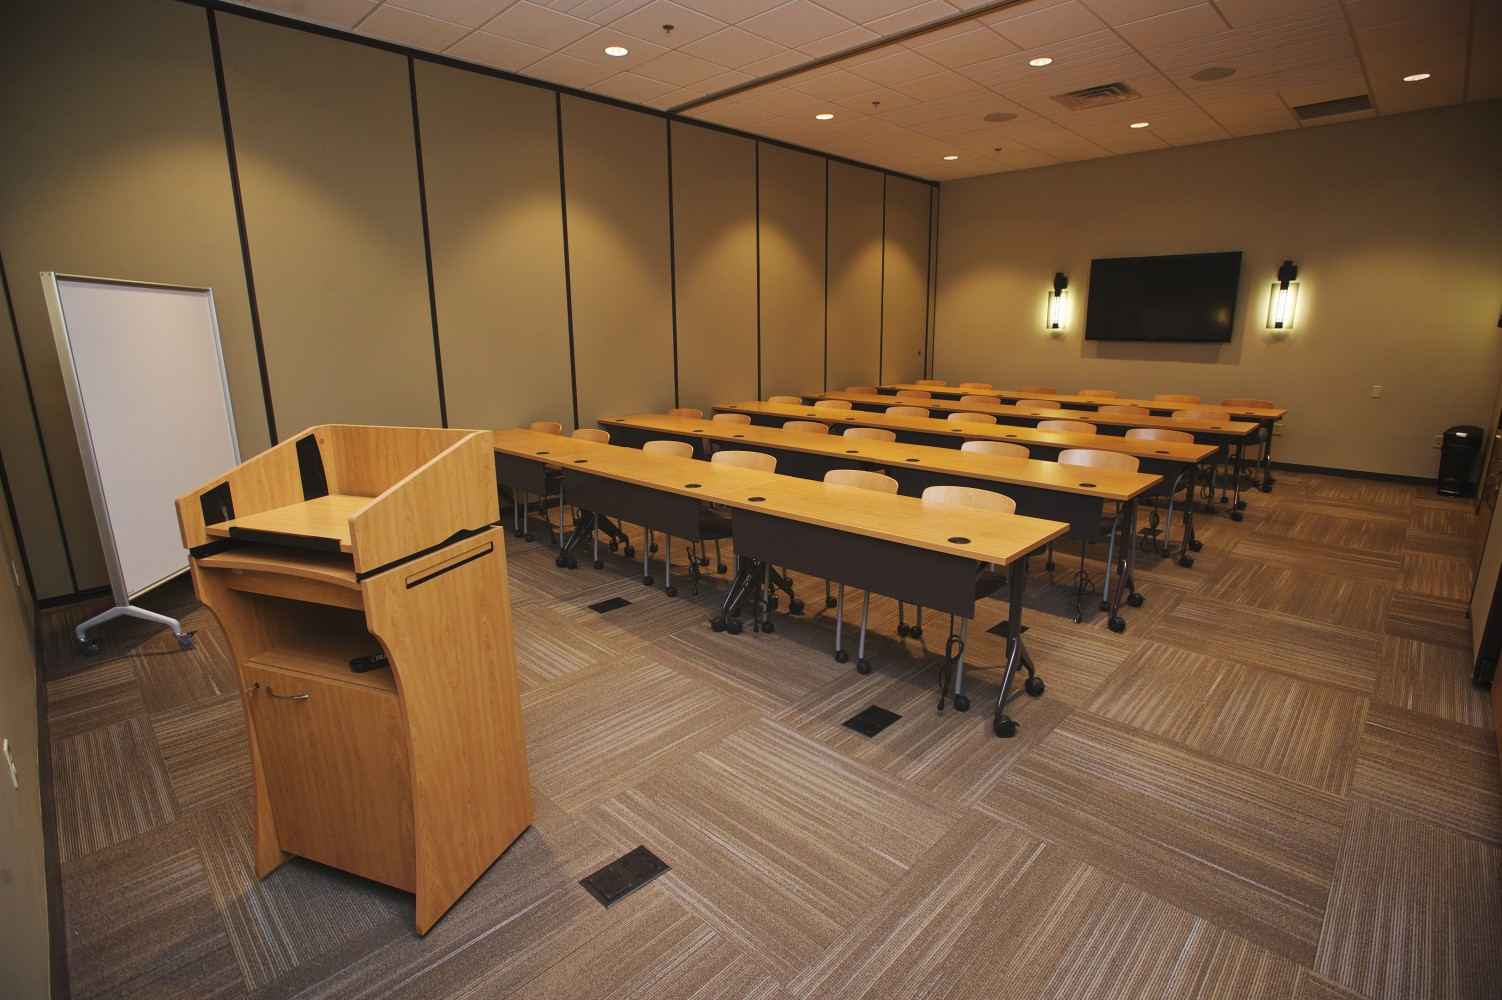 Small event space, find business meeting spaces in Brentwood, TN at Envision Conference Center.